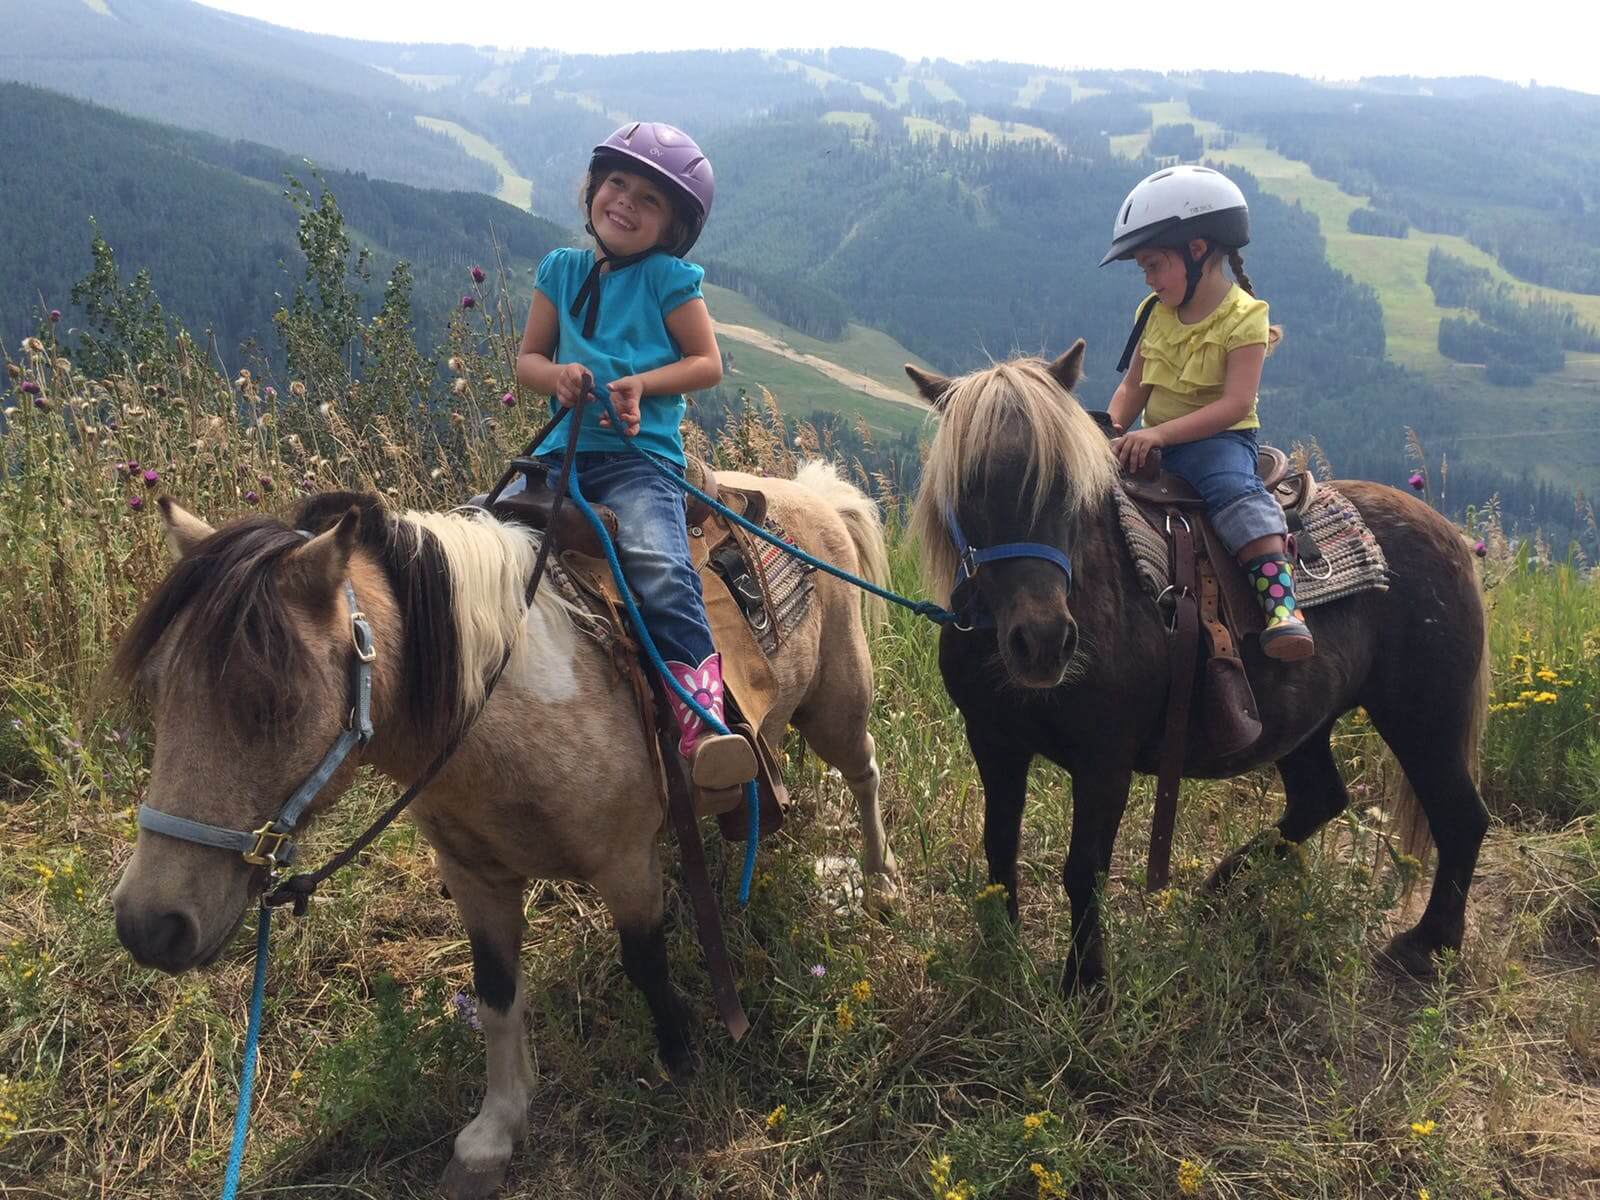 Two kids sitting atop their ponies